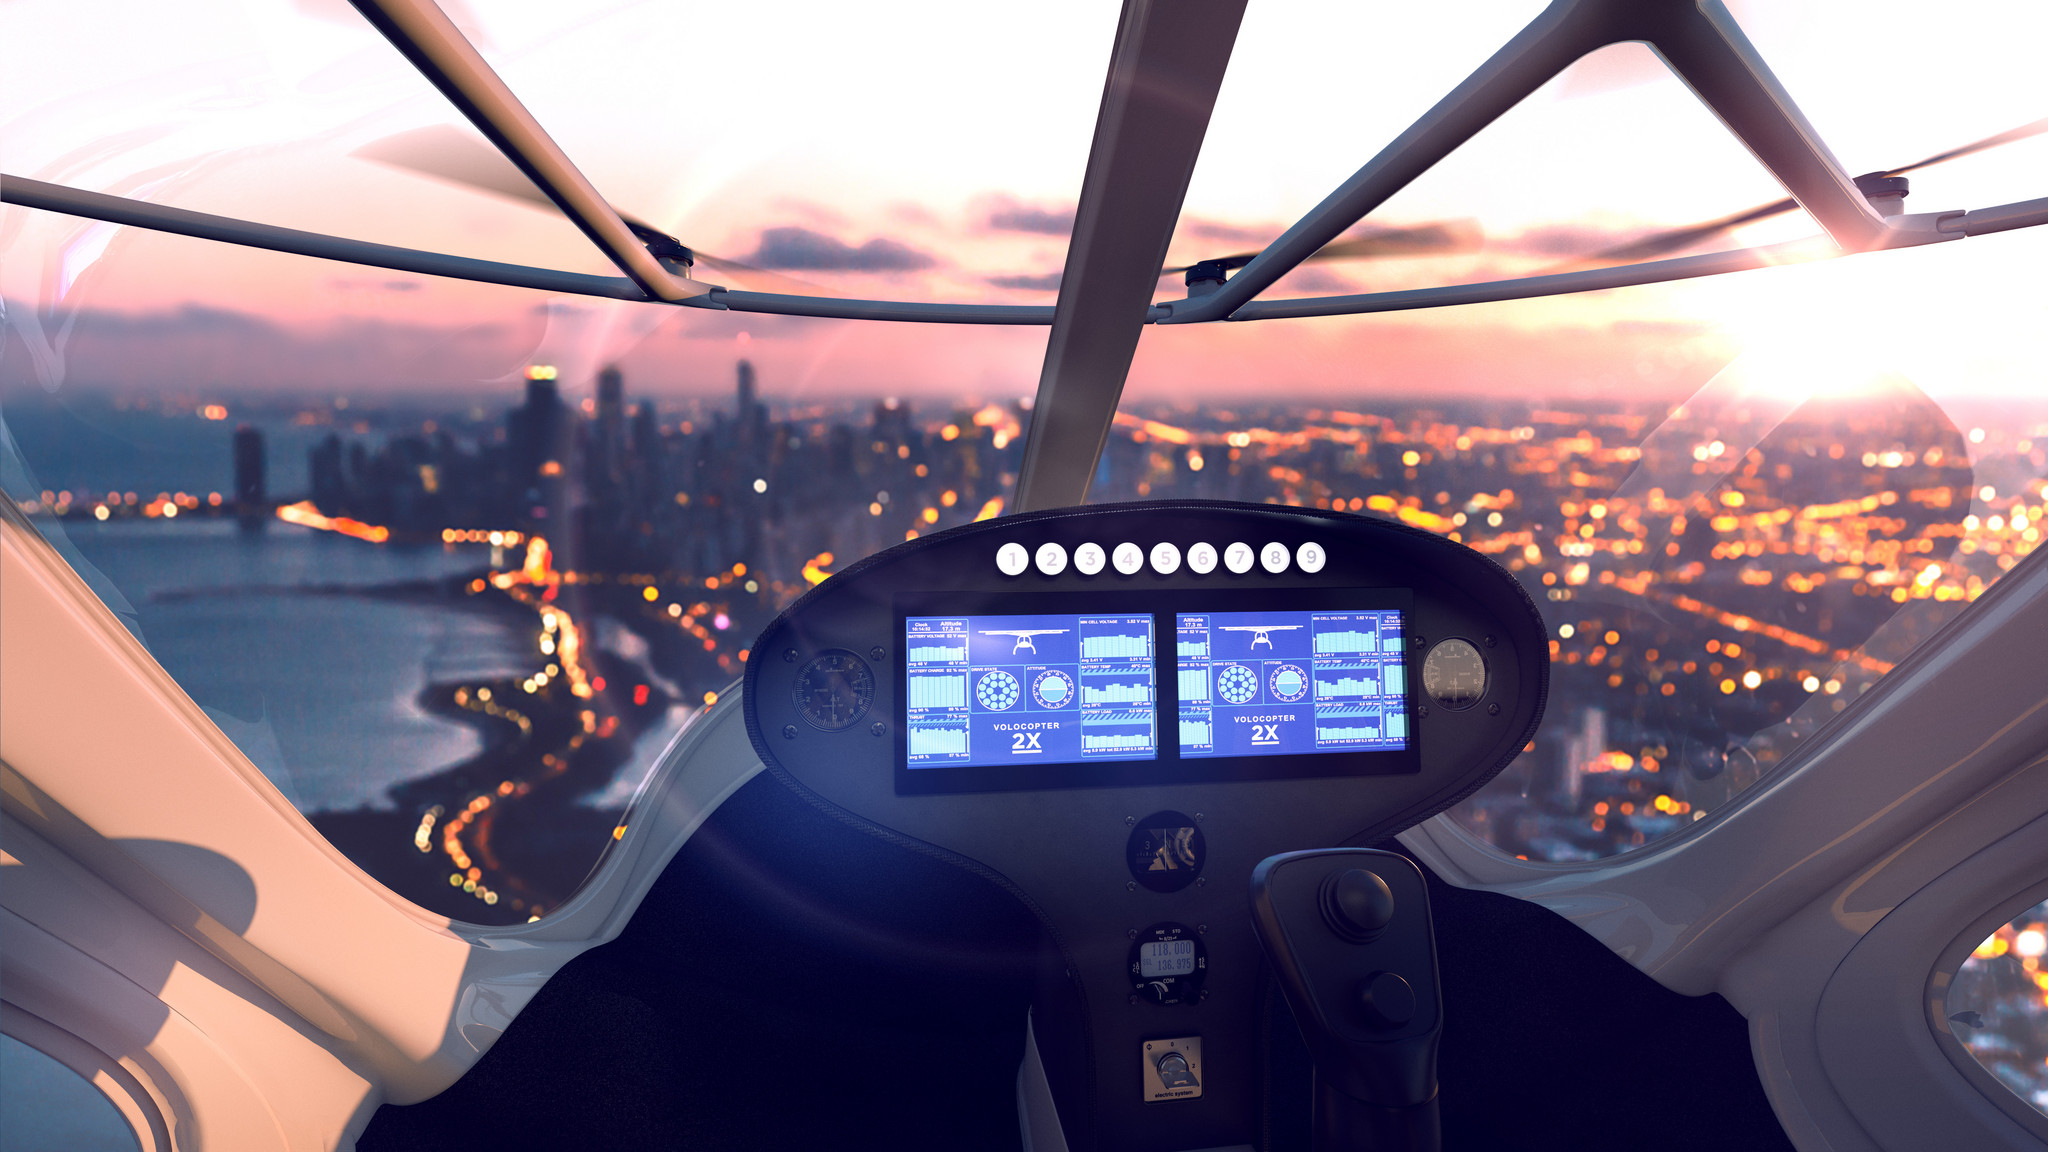 volocopter-2x-you-and-the-city.jpg